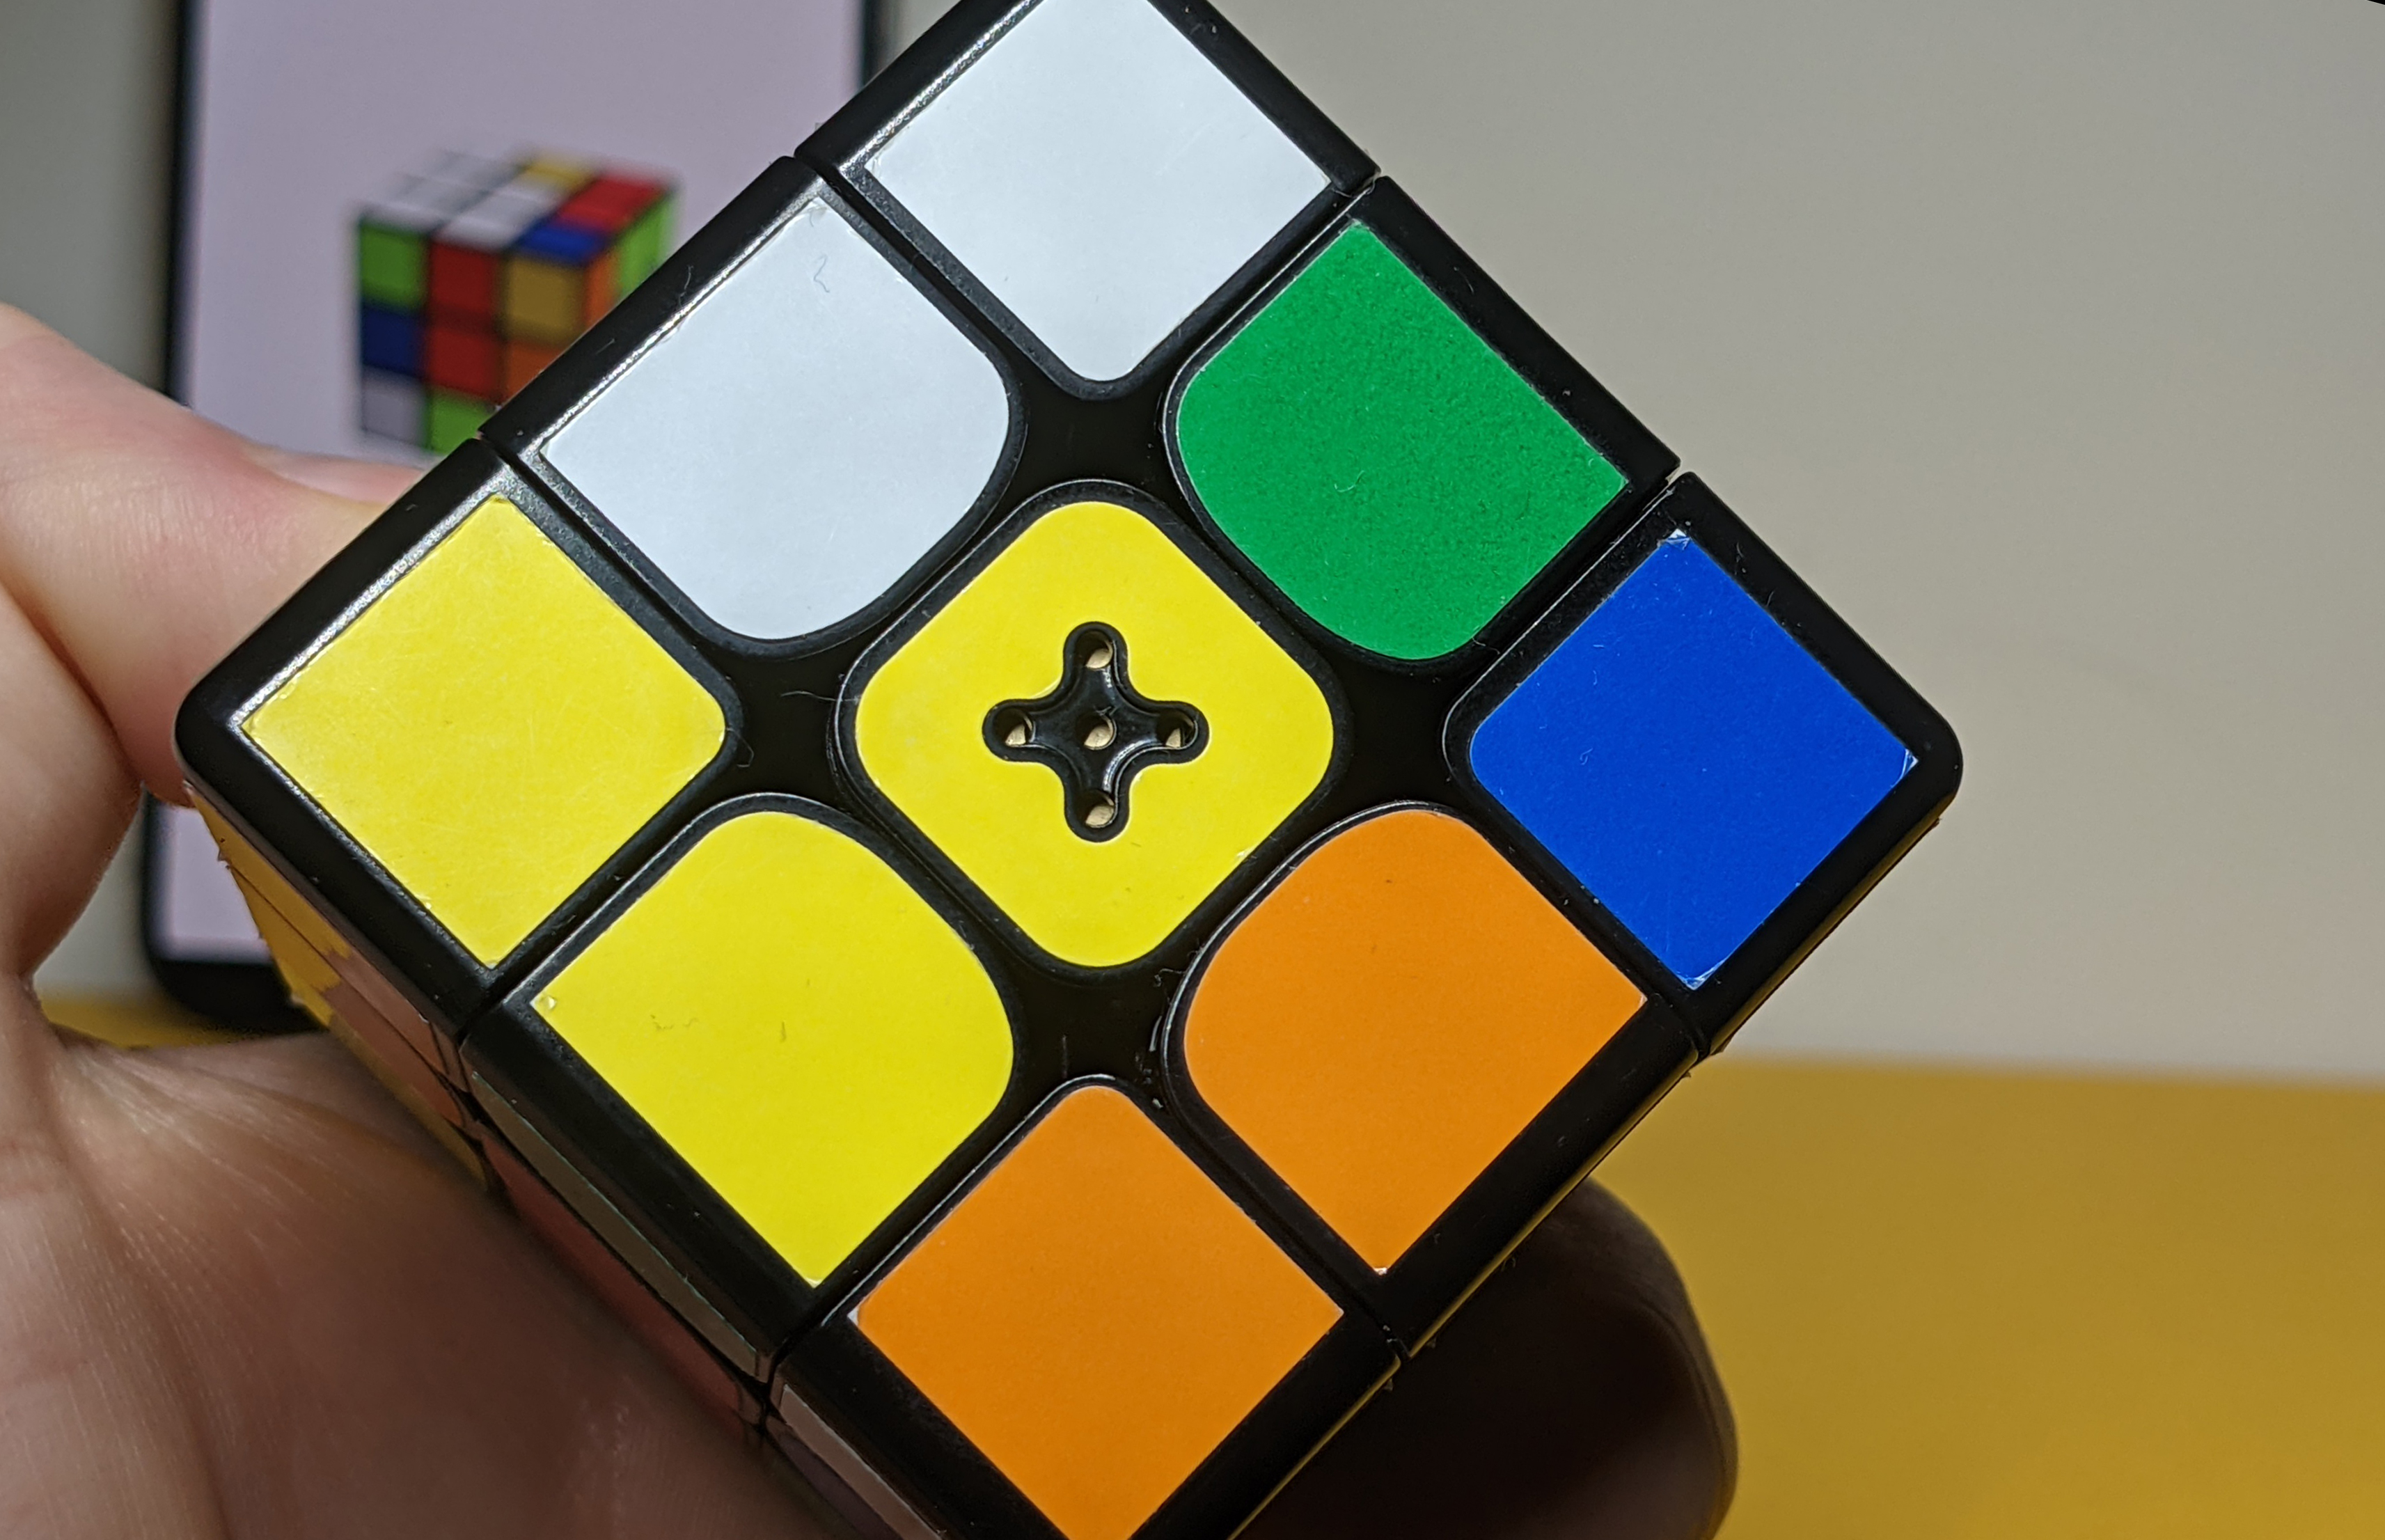 Finally, I can solve a Rubik's Cube